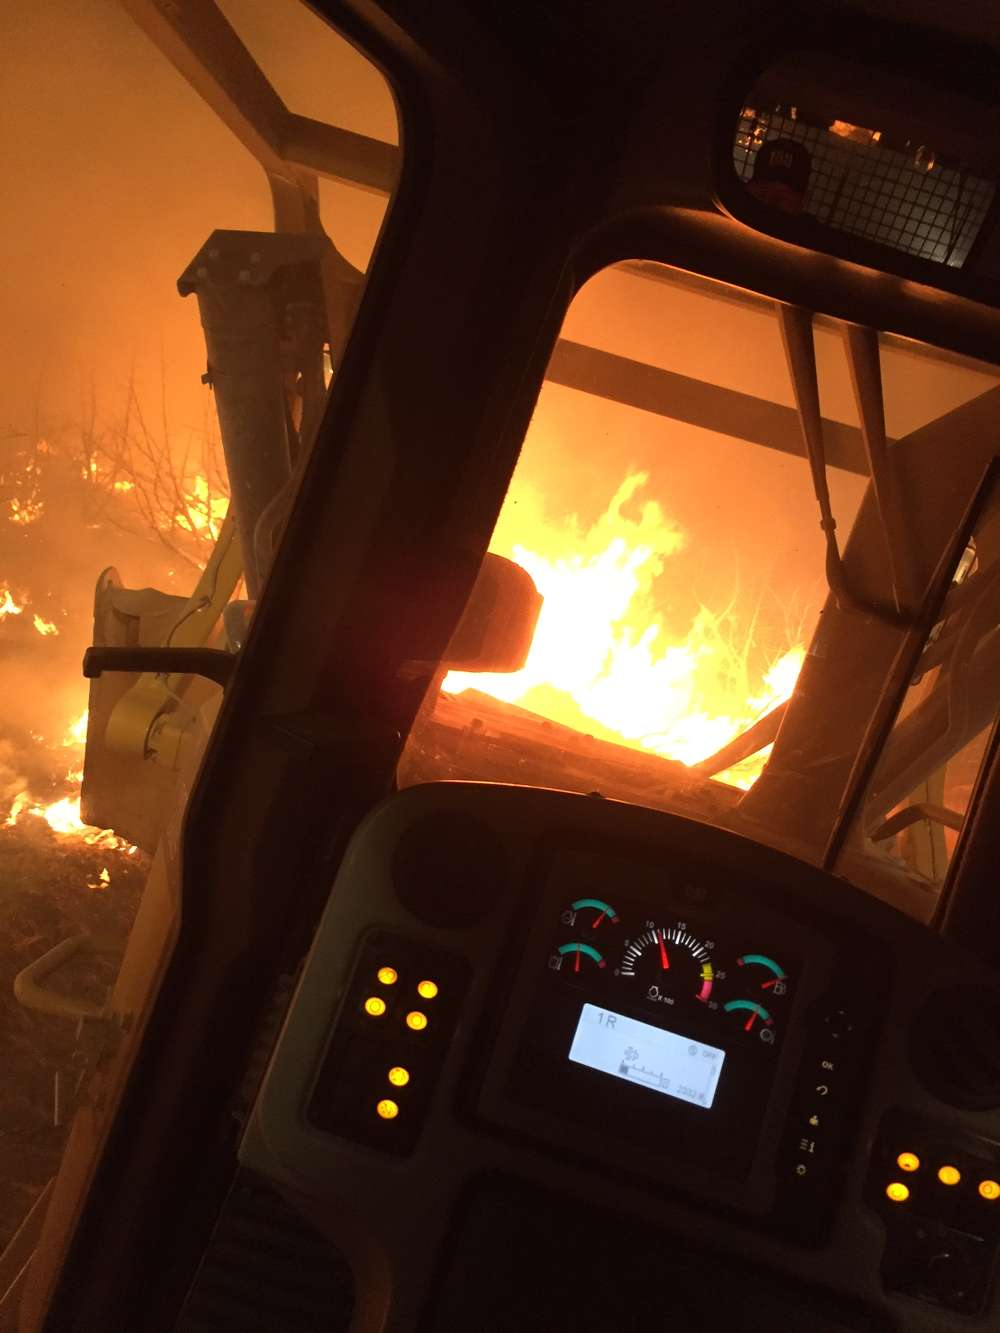 As 51 wildland fires burn in the western United States, heavy equipment is playing a big role in helping fire fighters contain the flames. (National Interagency Fire Center photo)